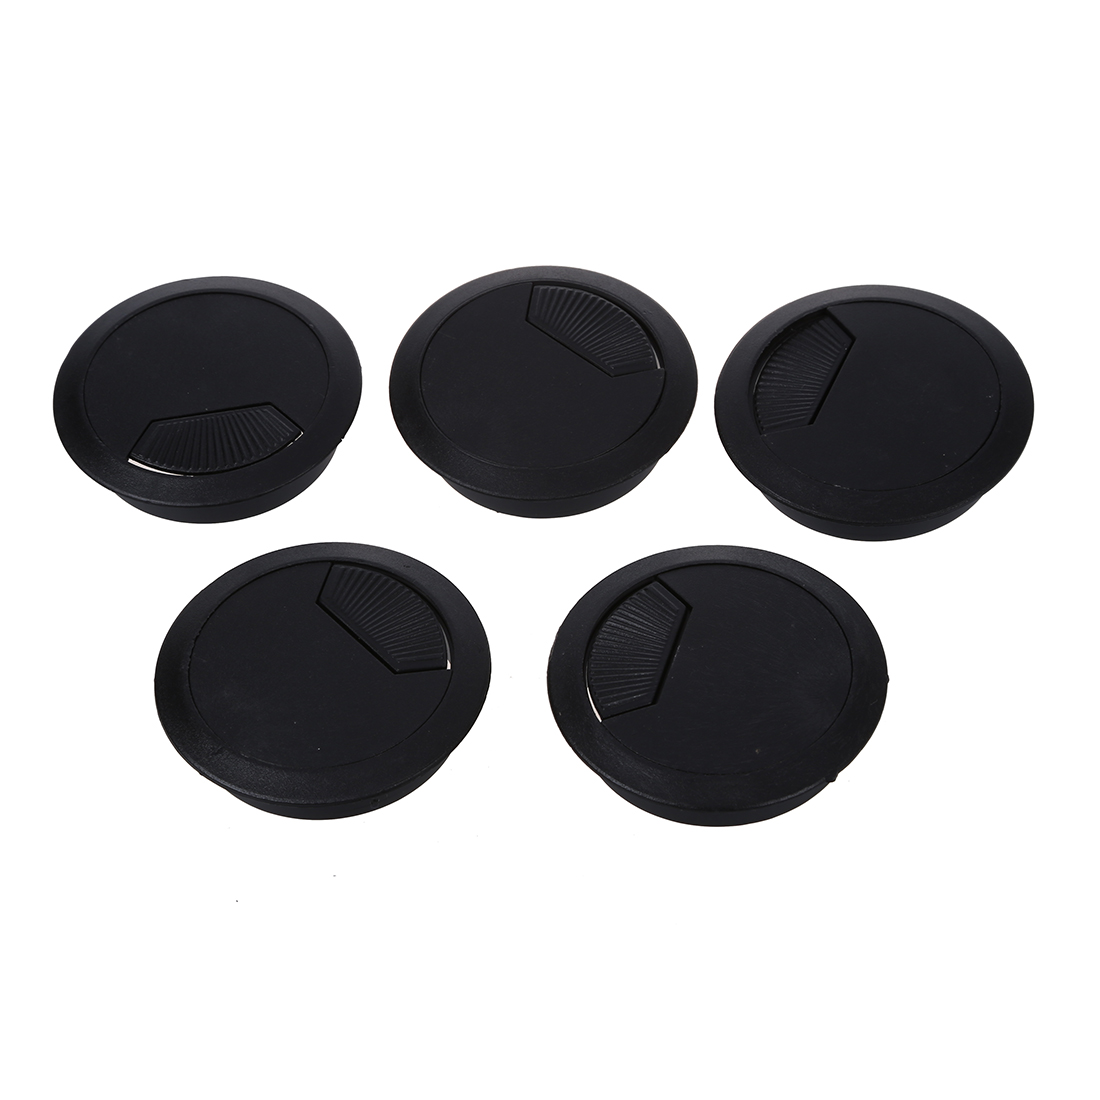 5 Pcs Home Office Desk Table Computer 60mm Cable Cord Grommet Hole Black tfbc black 60mm round grommet cable hole cover for computer desk 5 pcs